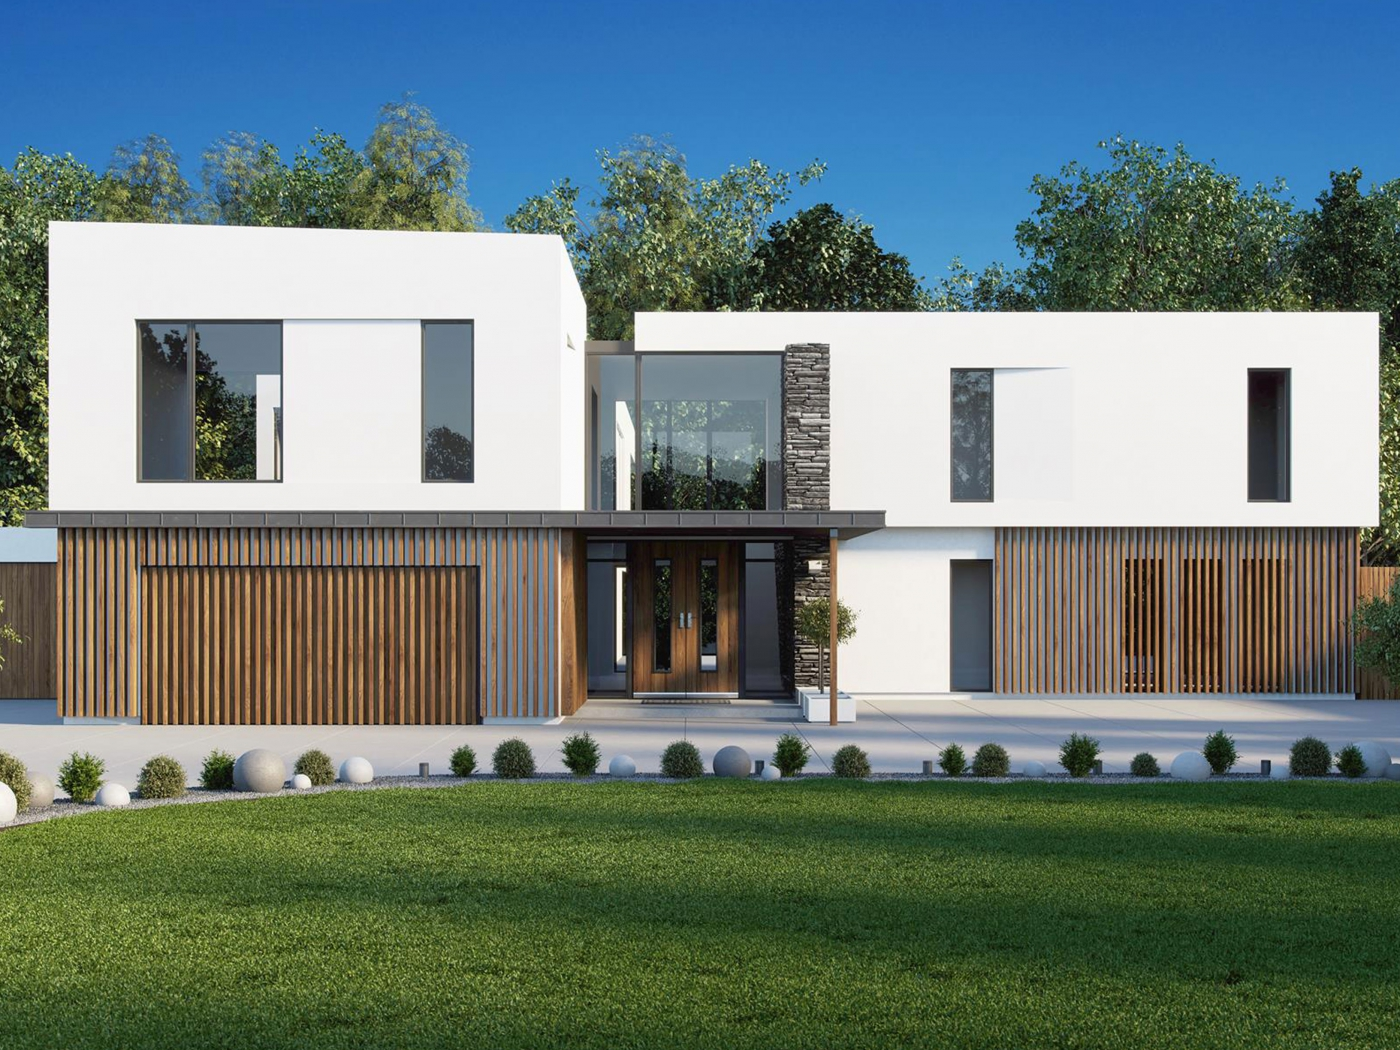 Bespoke Derry home gains planning consent